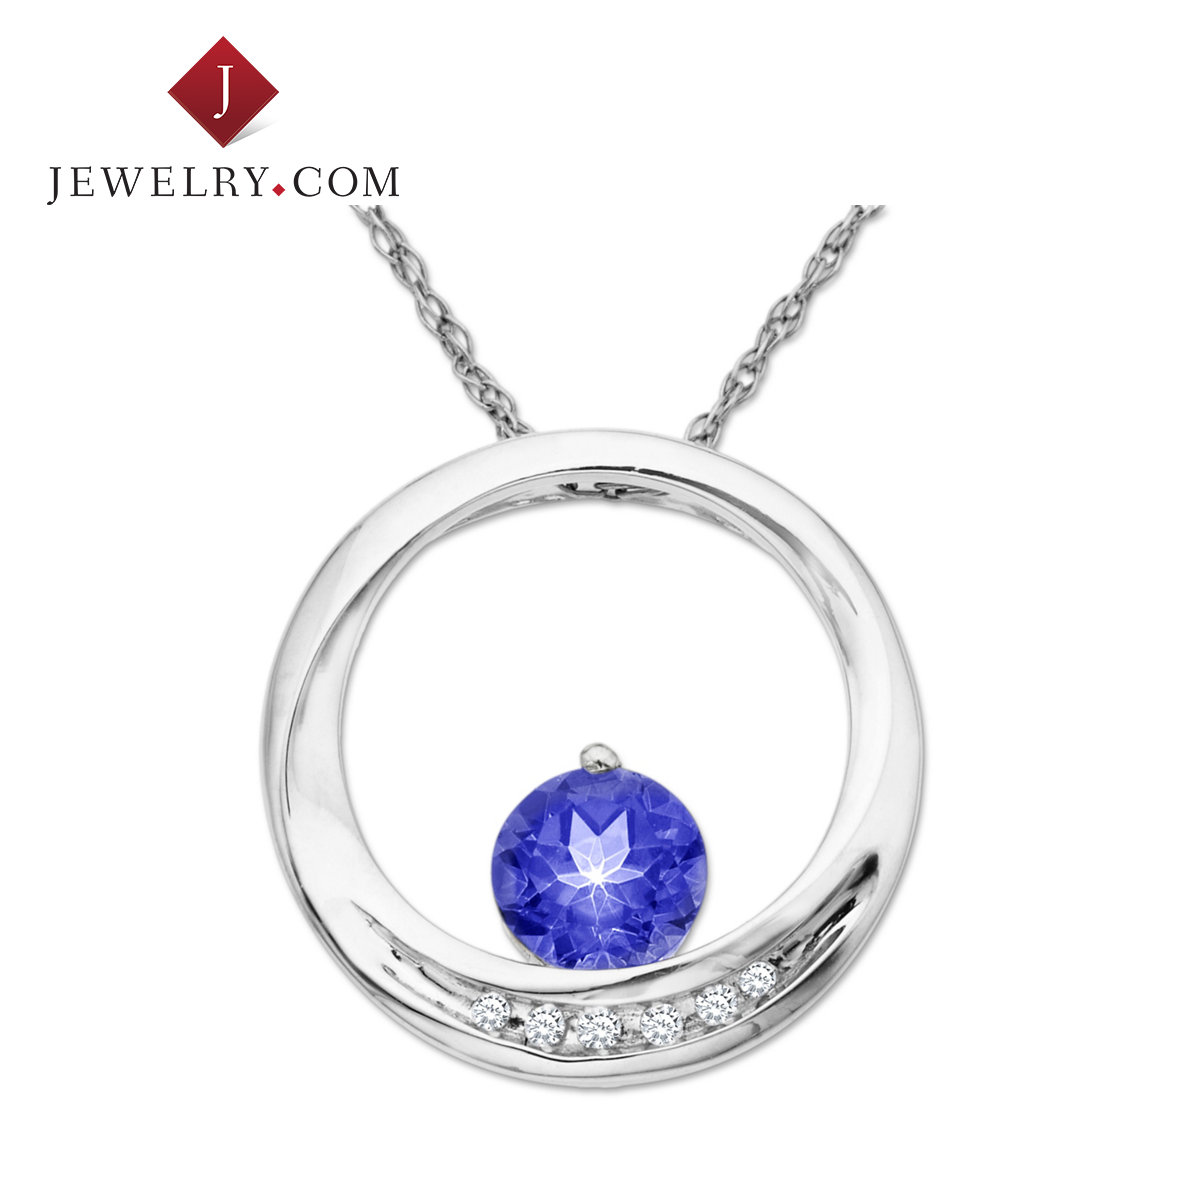 Jewelry.com official k gold sapphire necklaces